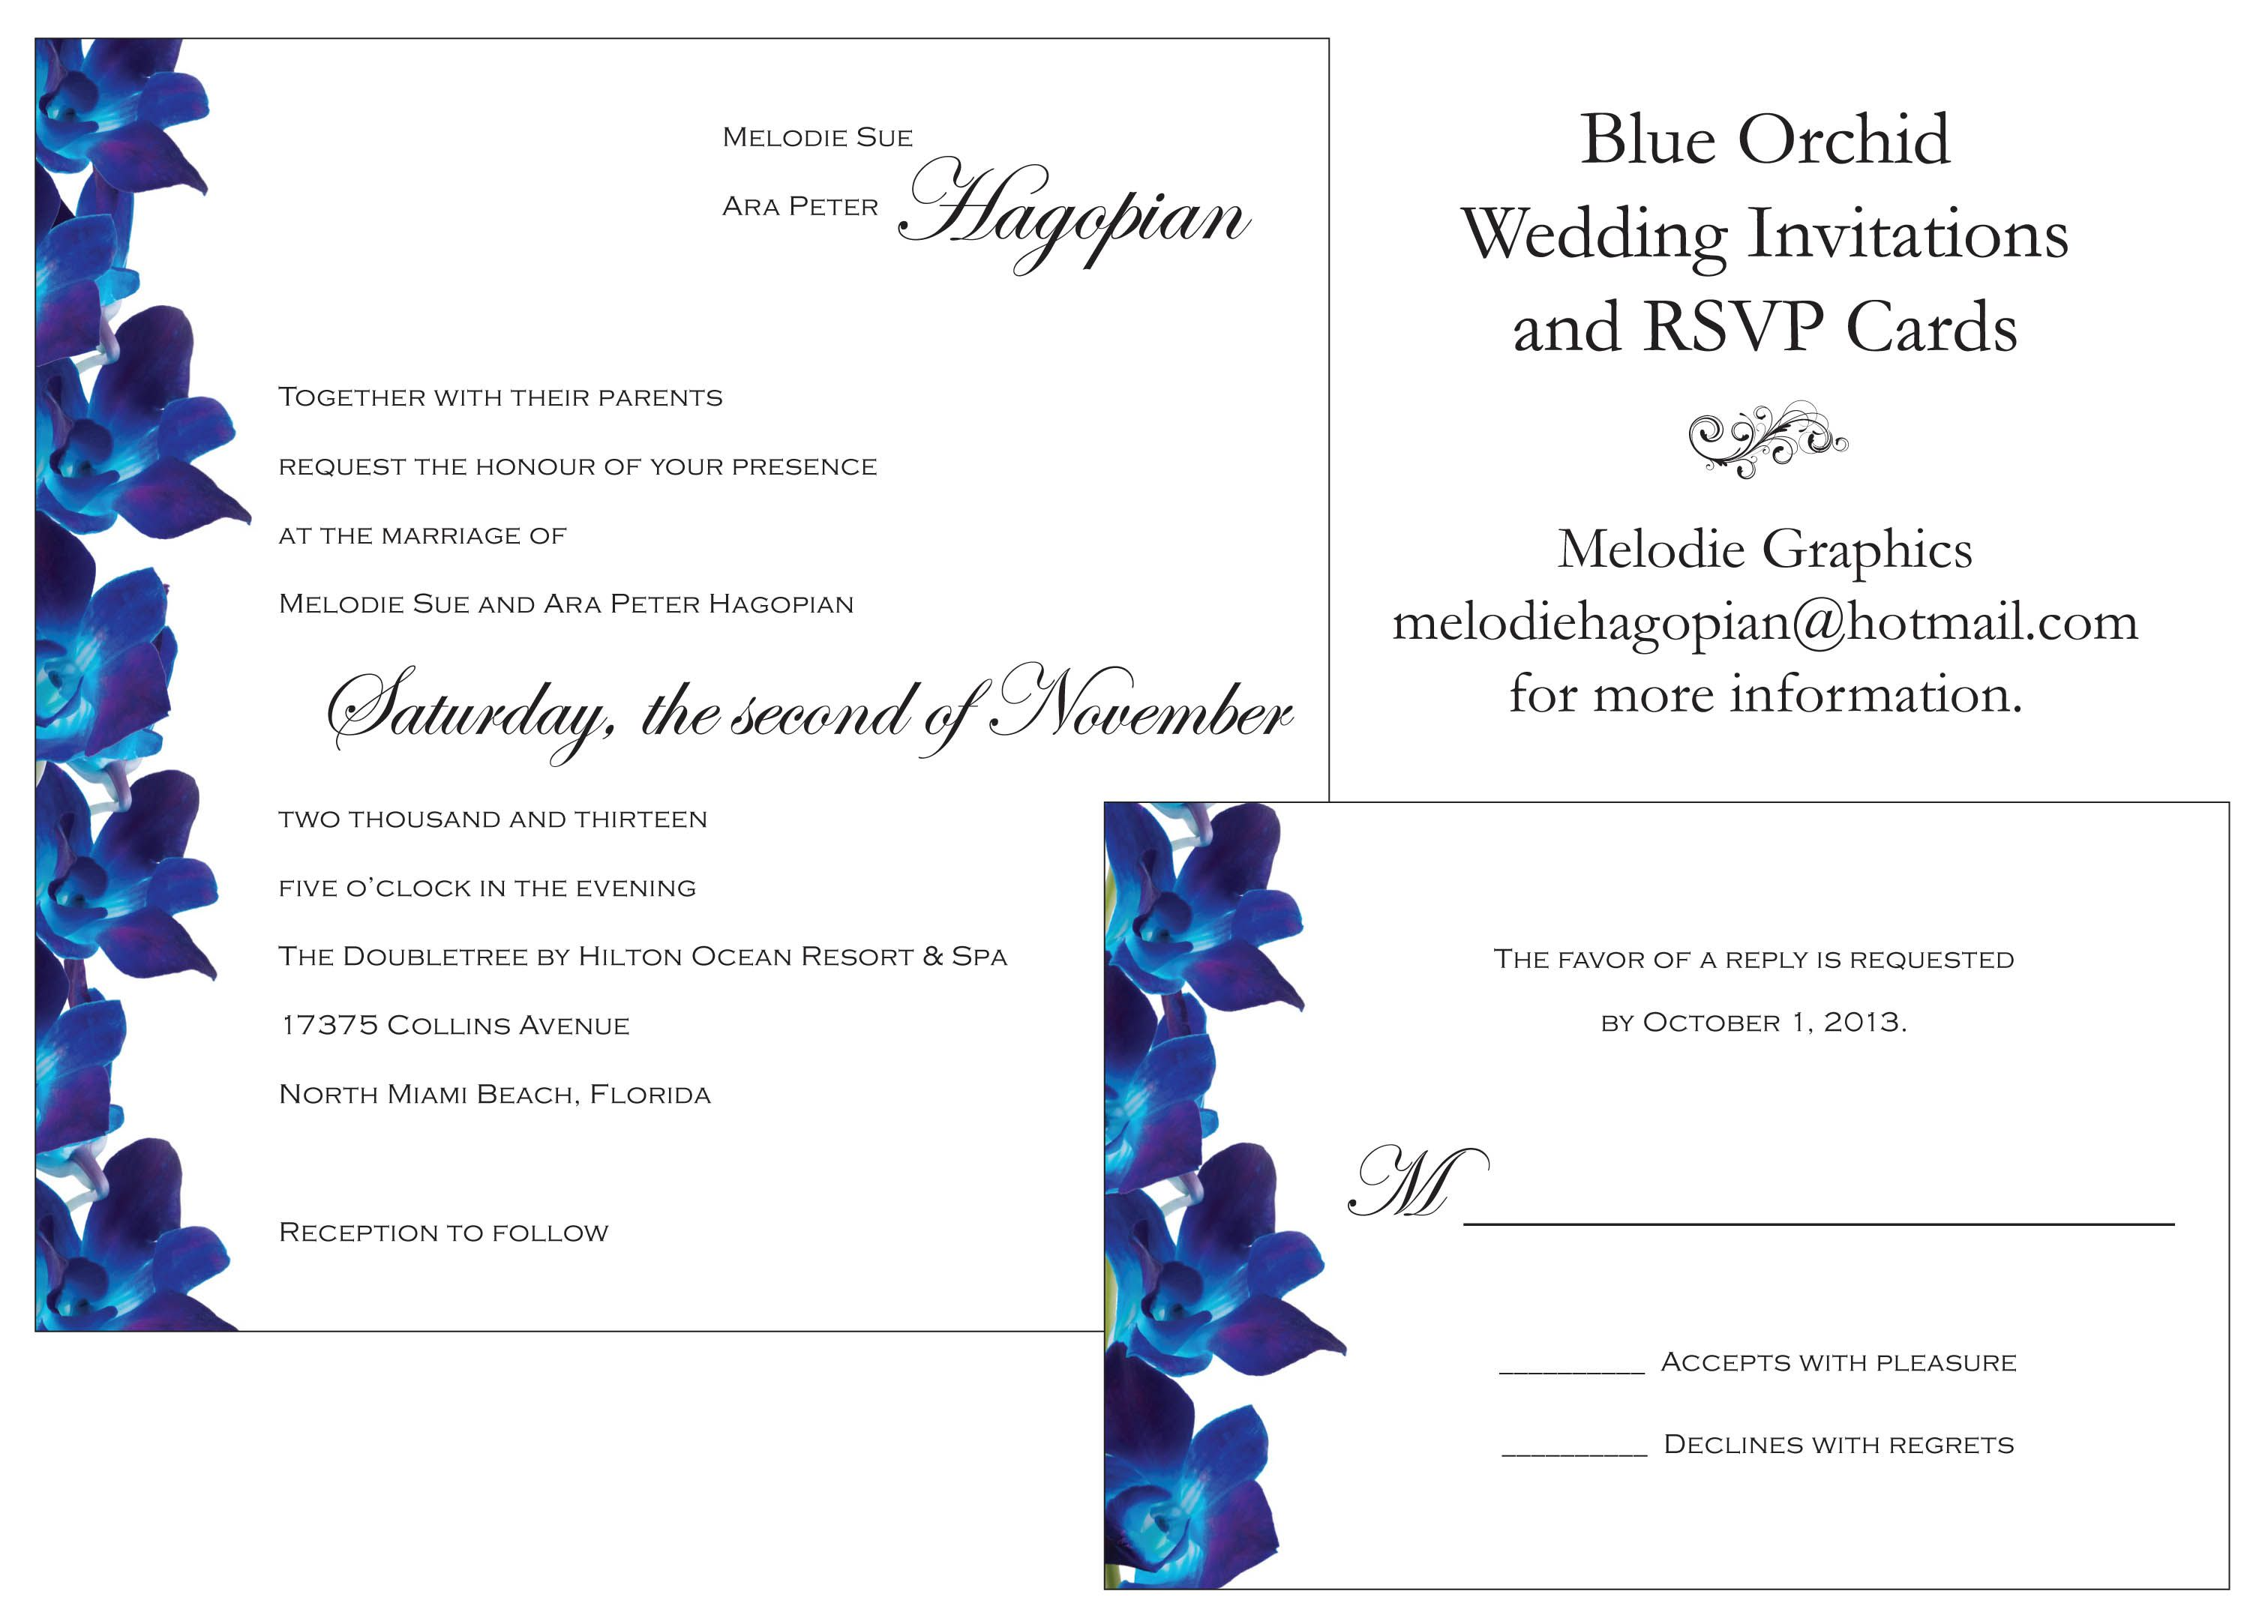 Blue Orchid Wedding Invitations U0026 RSVP Cards. Melodie Graphics  Melodiehagopian@hotmail.com For